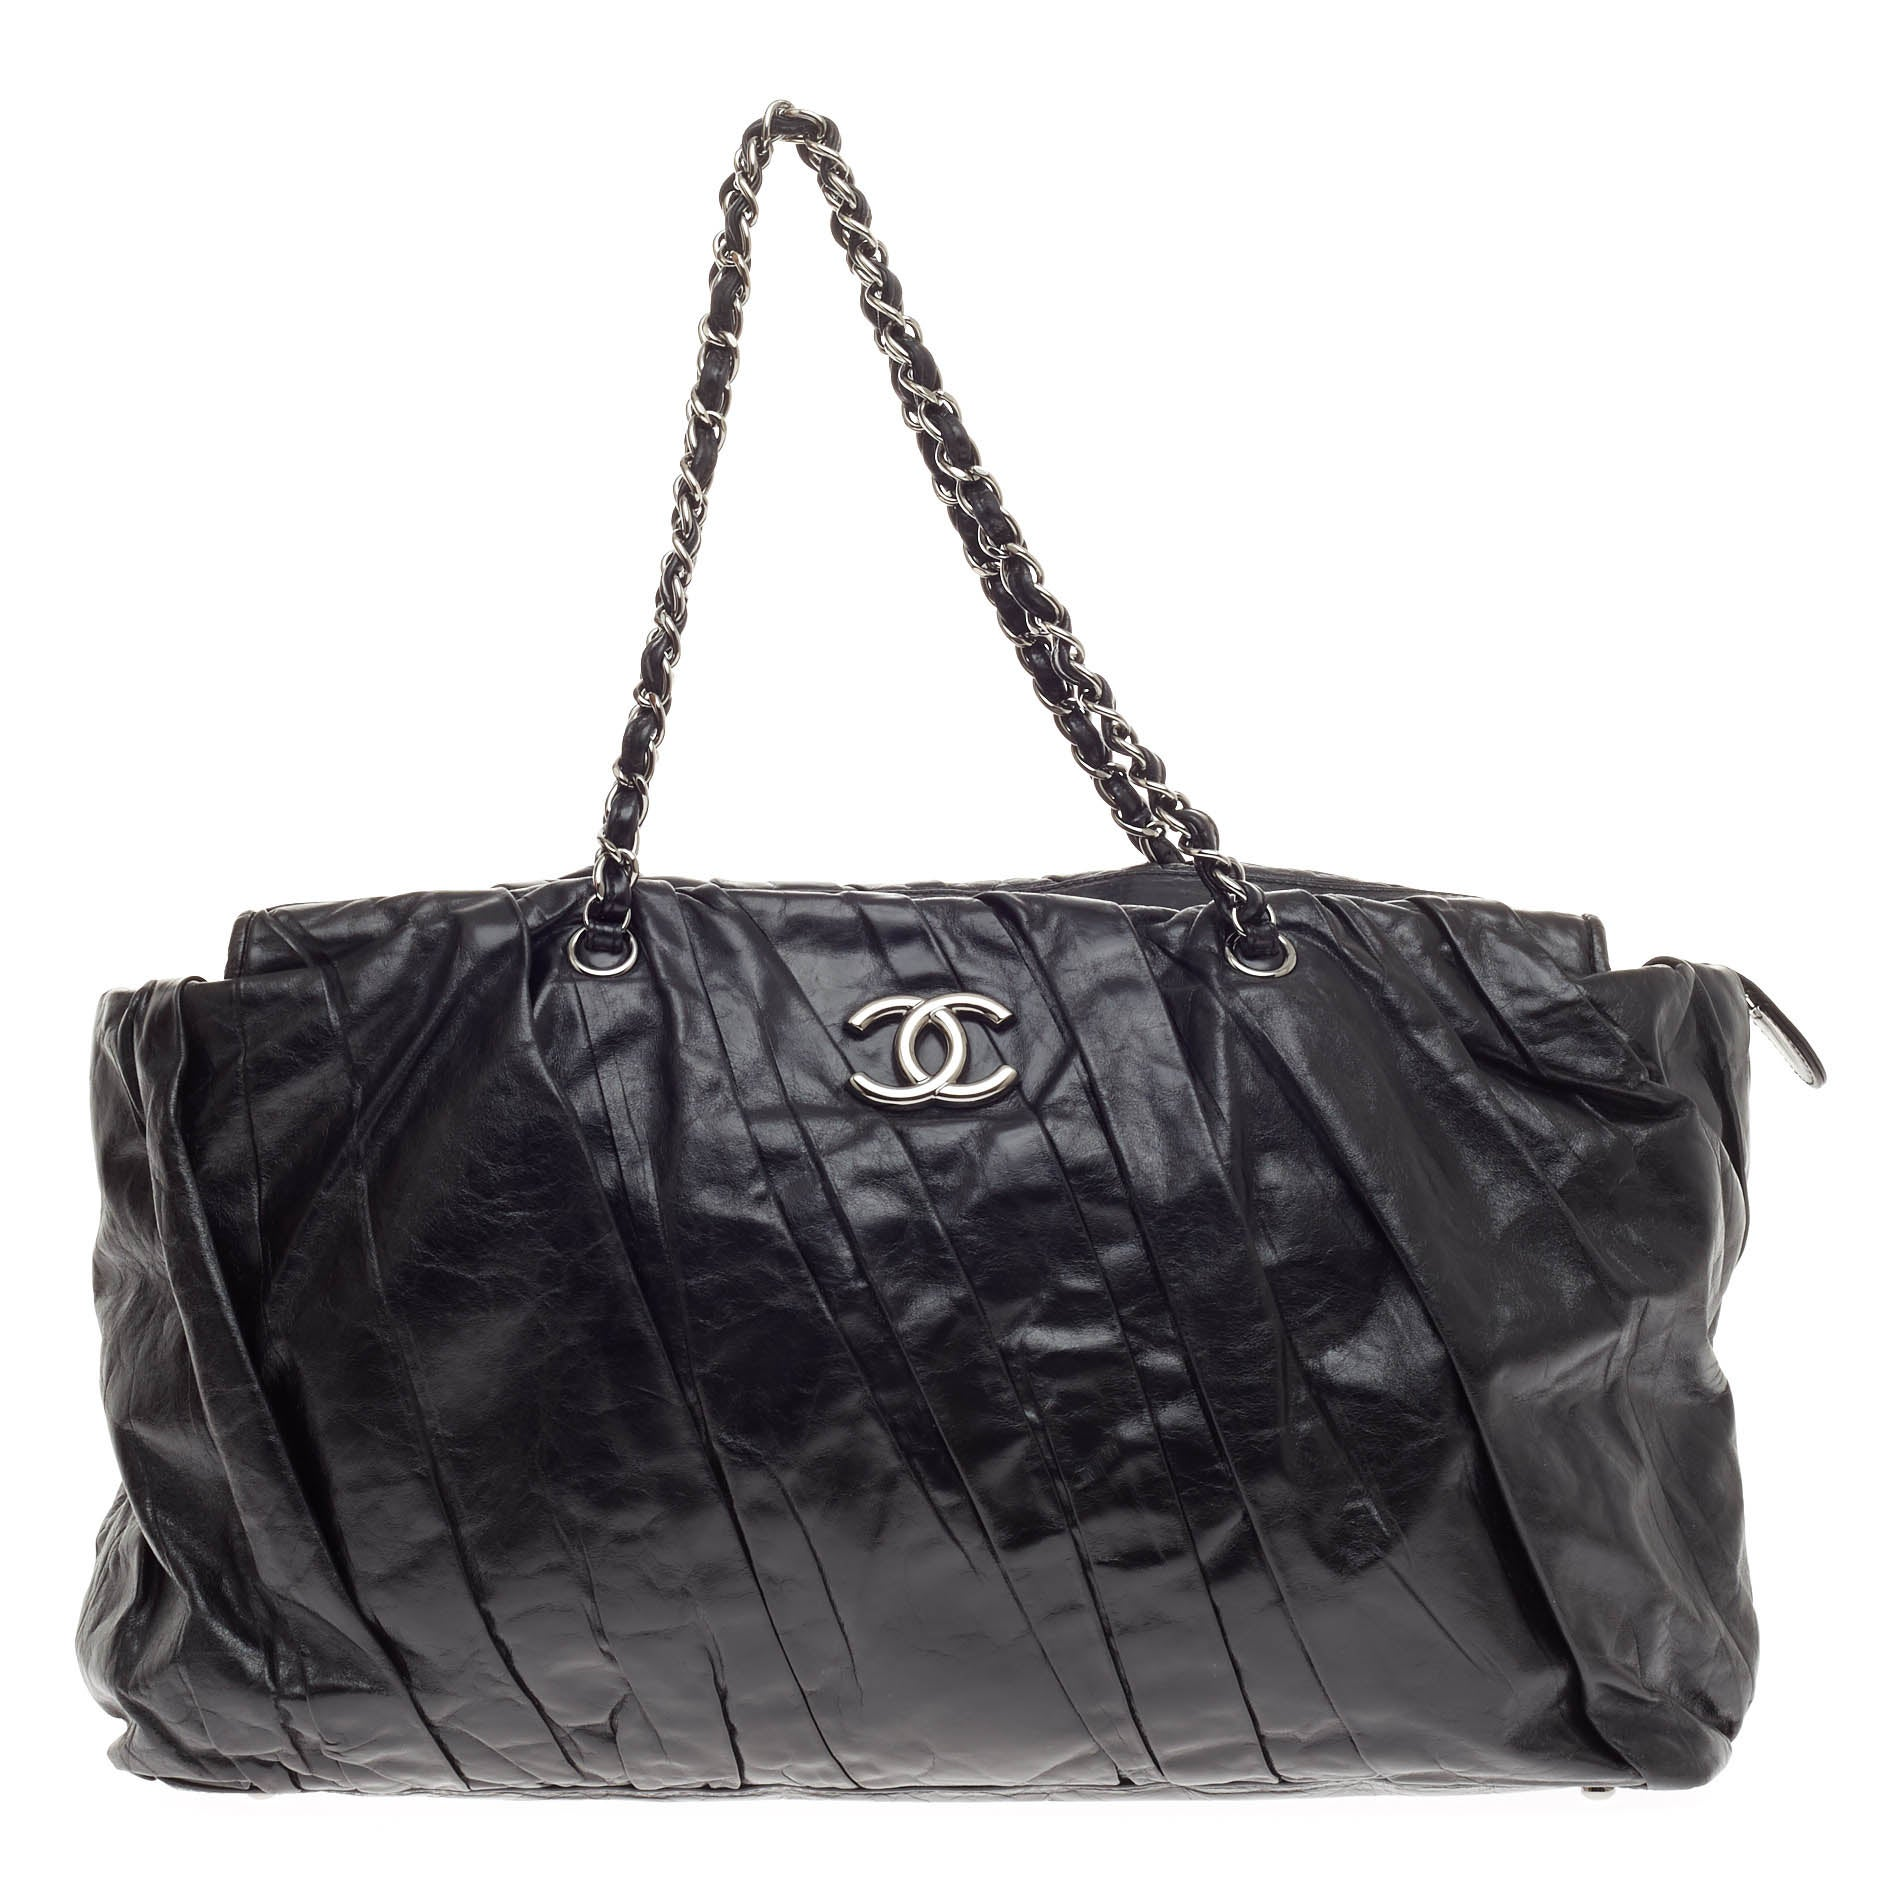 7a9dc5261899 Chanel Twisted Tote Glazed Calfskin East West at 1stdibs